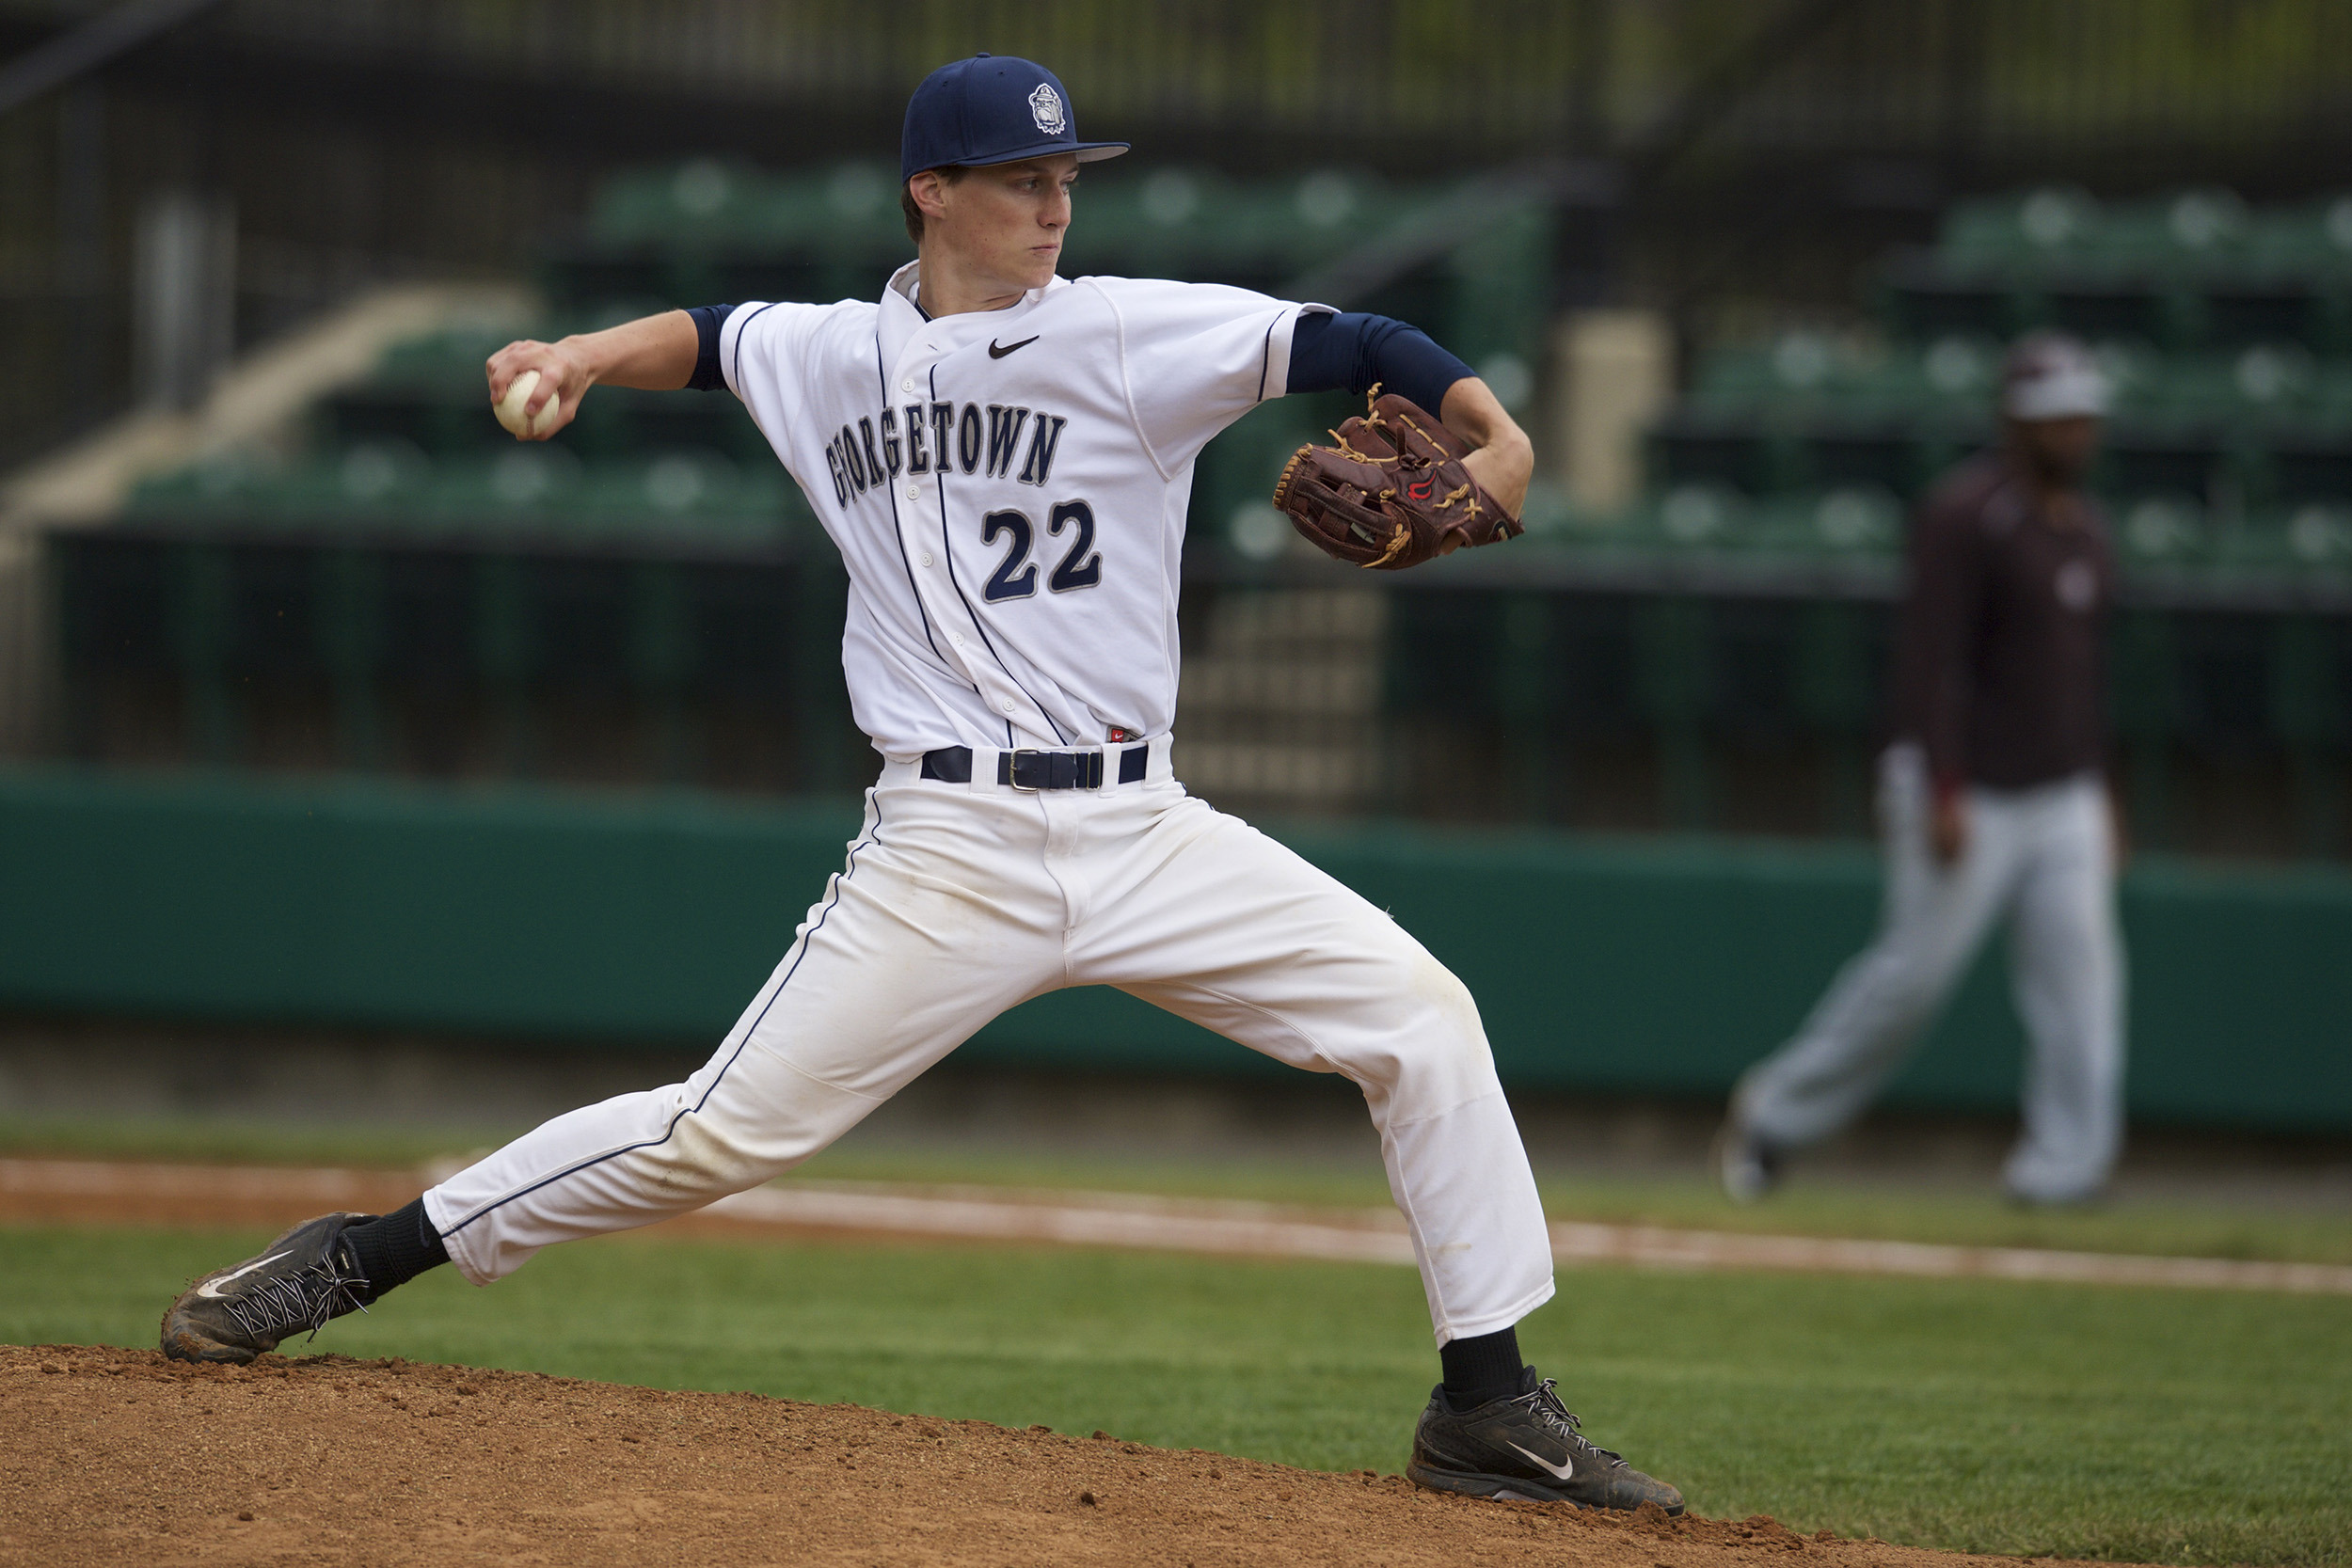 Jimmy Swad pitched two hitless innings to pick up his fourth win of the season.